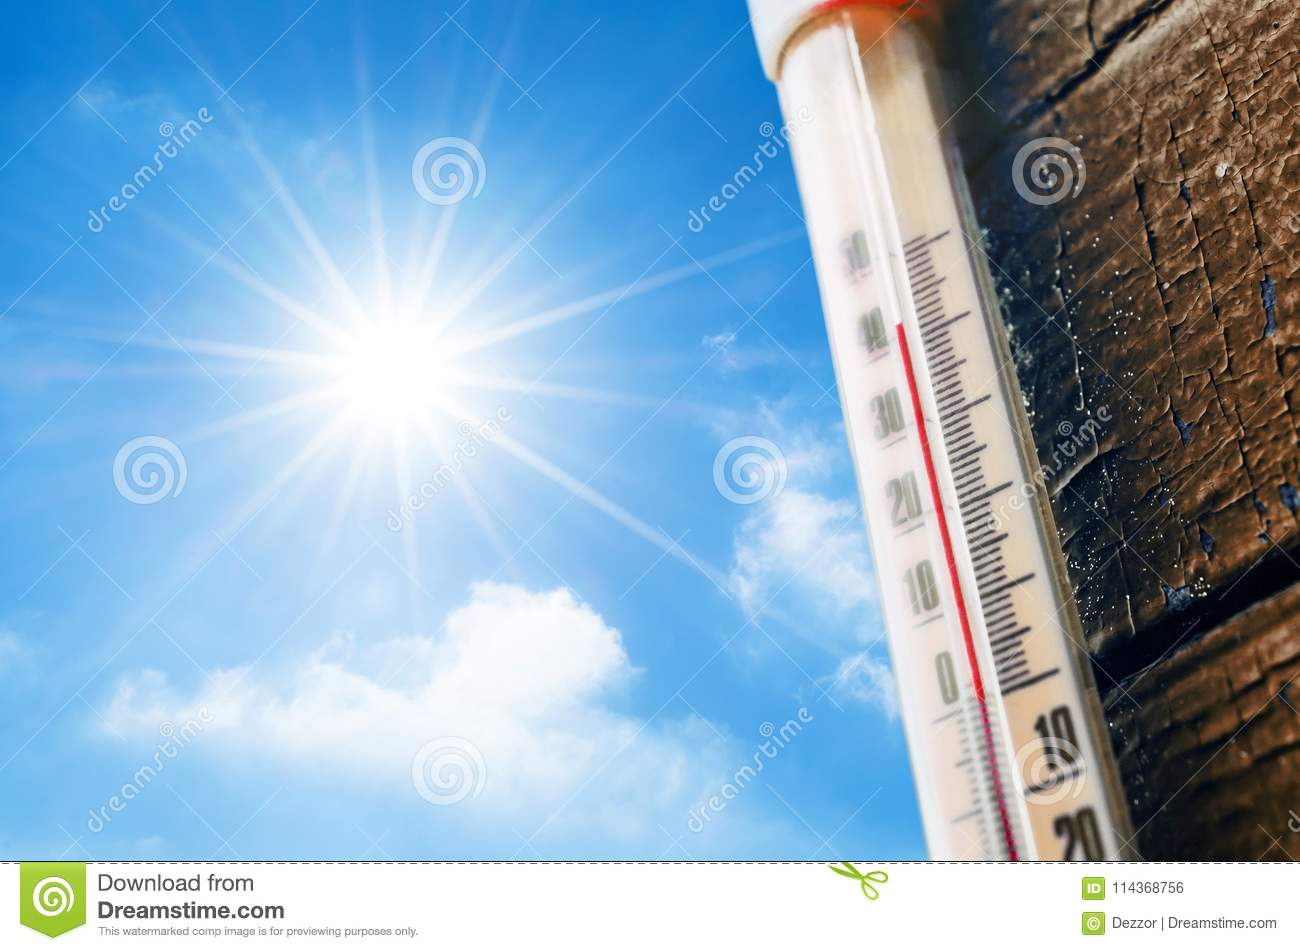 Thermometer With A High Temperature Reading On A Scale